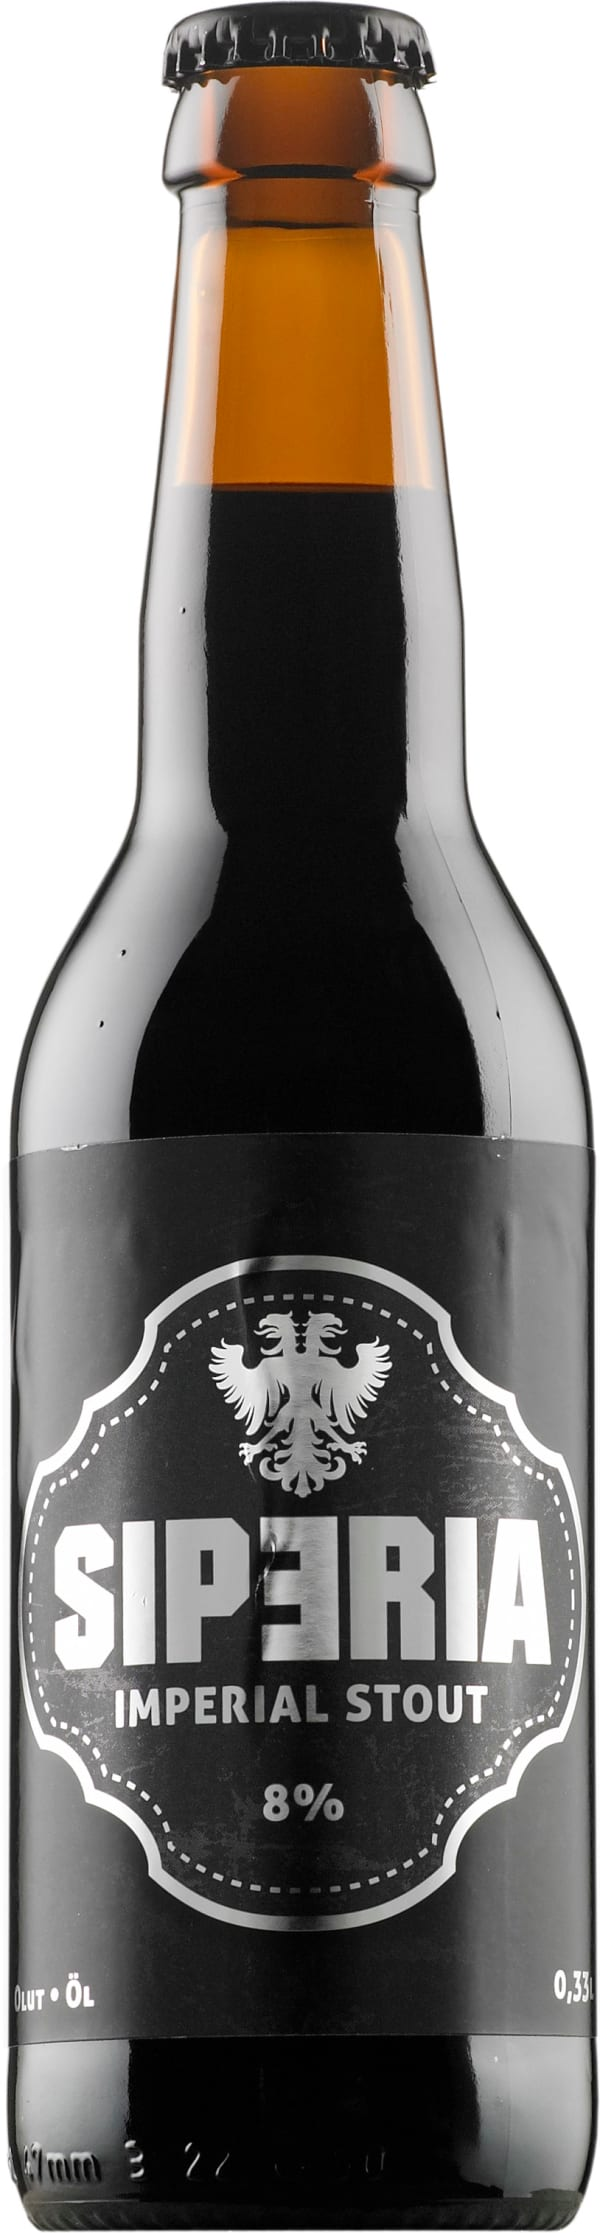 Siperia Imperial Stout